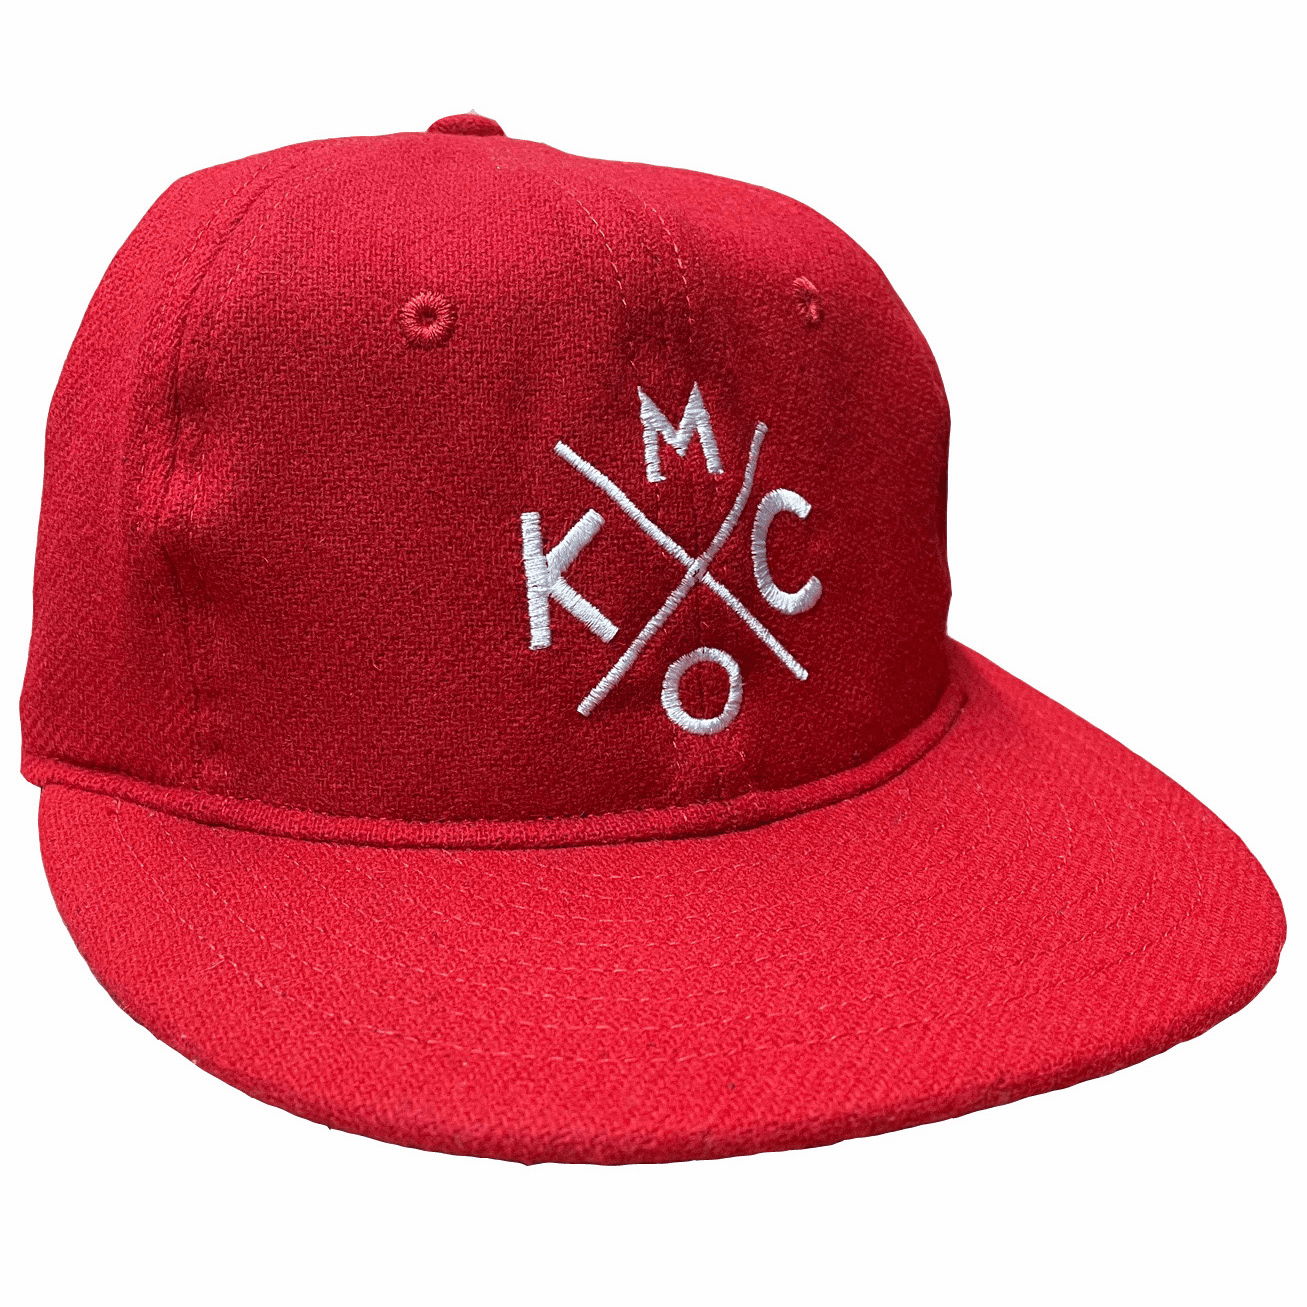 KCMO Wool Flatbill Hat<br>Red